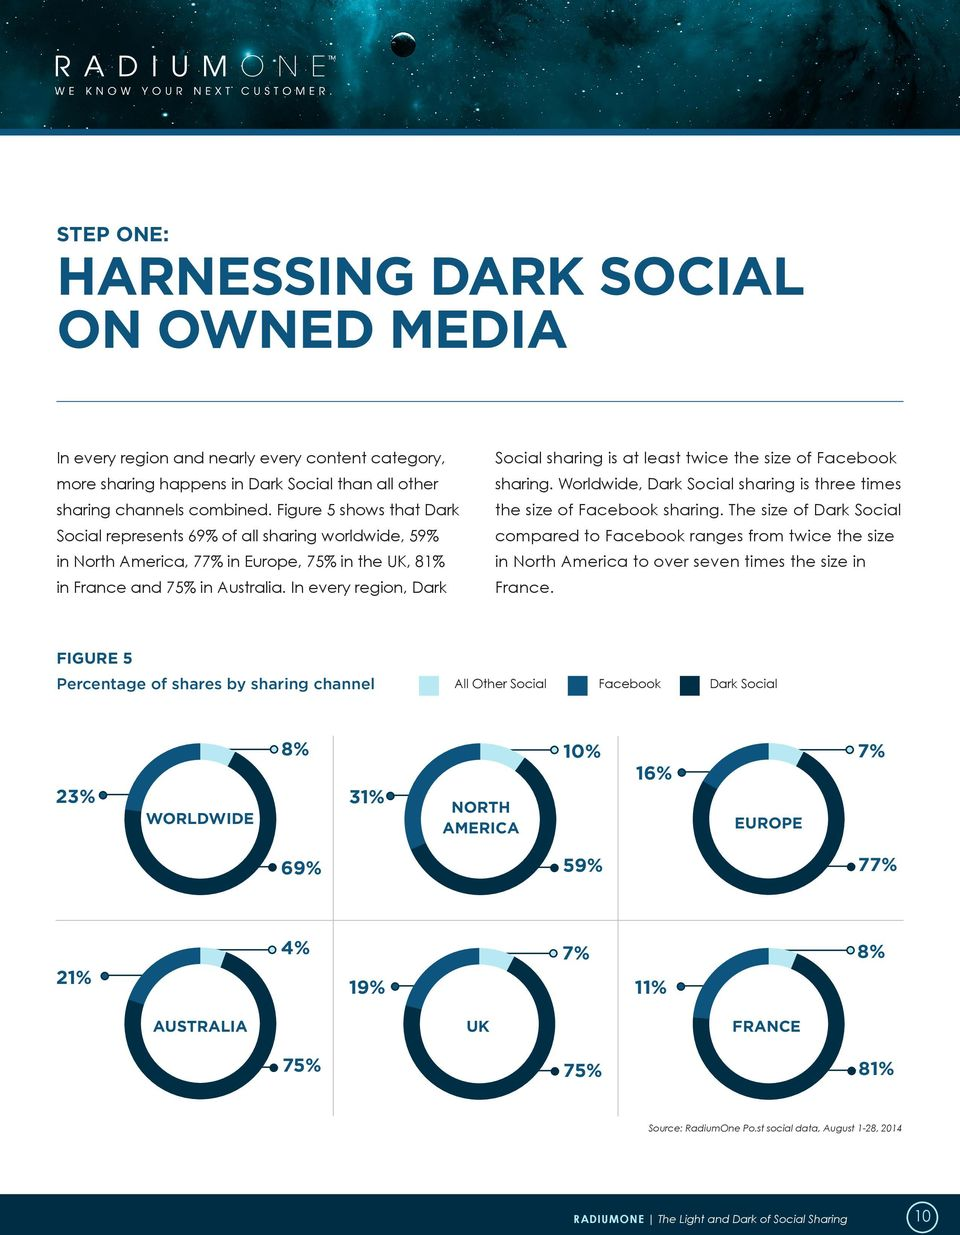 In every region, Dark Social sharing is at least twice the size of Facebook sharing. Worldwide, Dark Social sharing is three times the size of Facebook sharing.